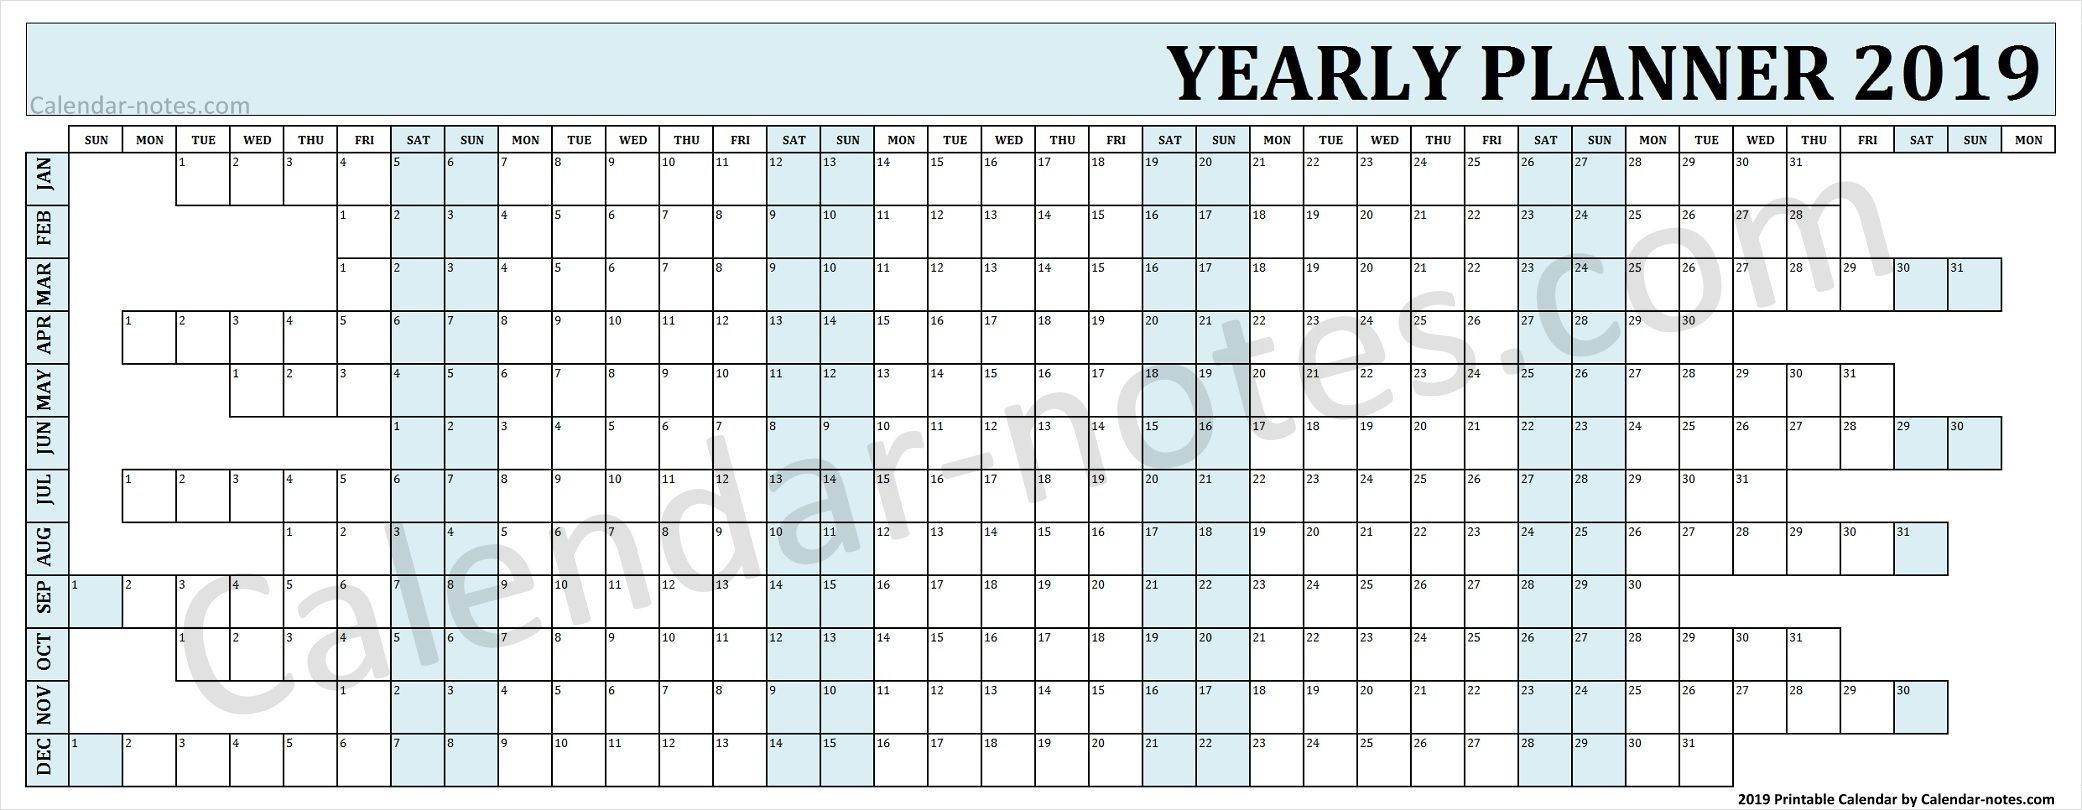 Calendar 2019 Year Planner | Yearly Planner 2019 | Calendar 2019 To with Year Printable Planner Template